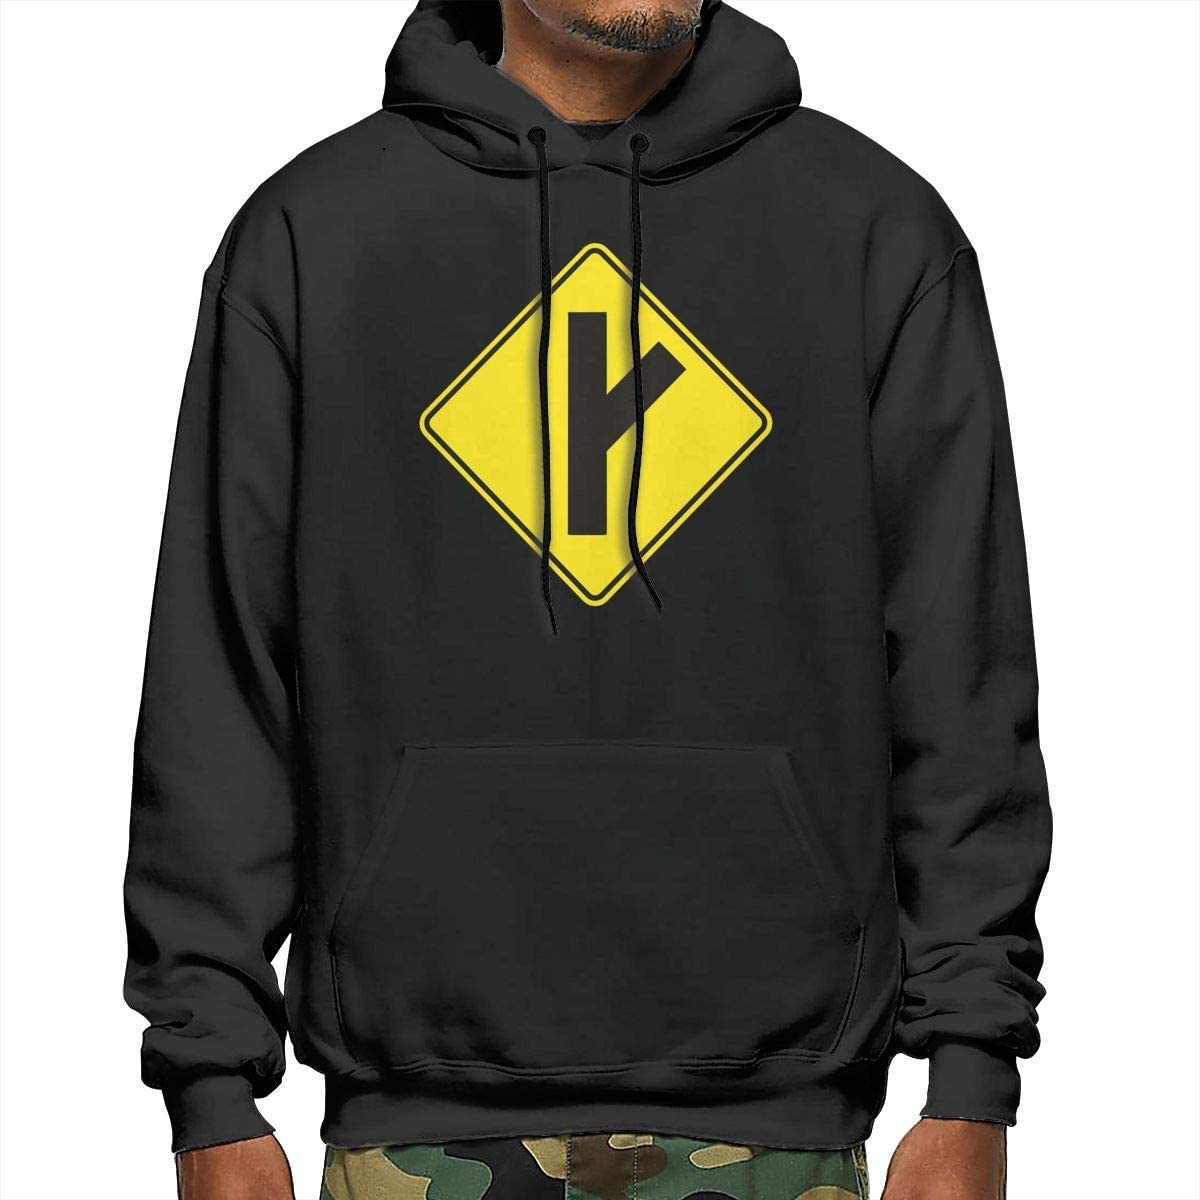 Men Going Their Own Way Red Pill and Blue Pill Symbol Mens Hooded Sweatshirt